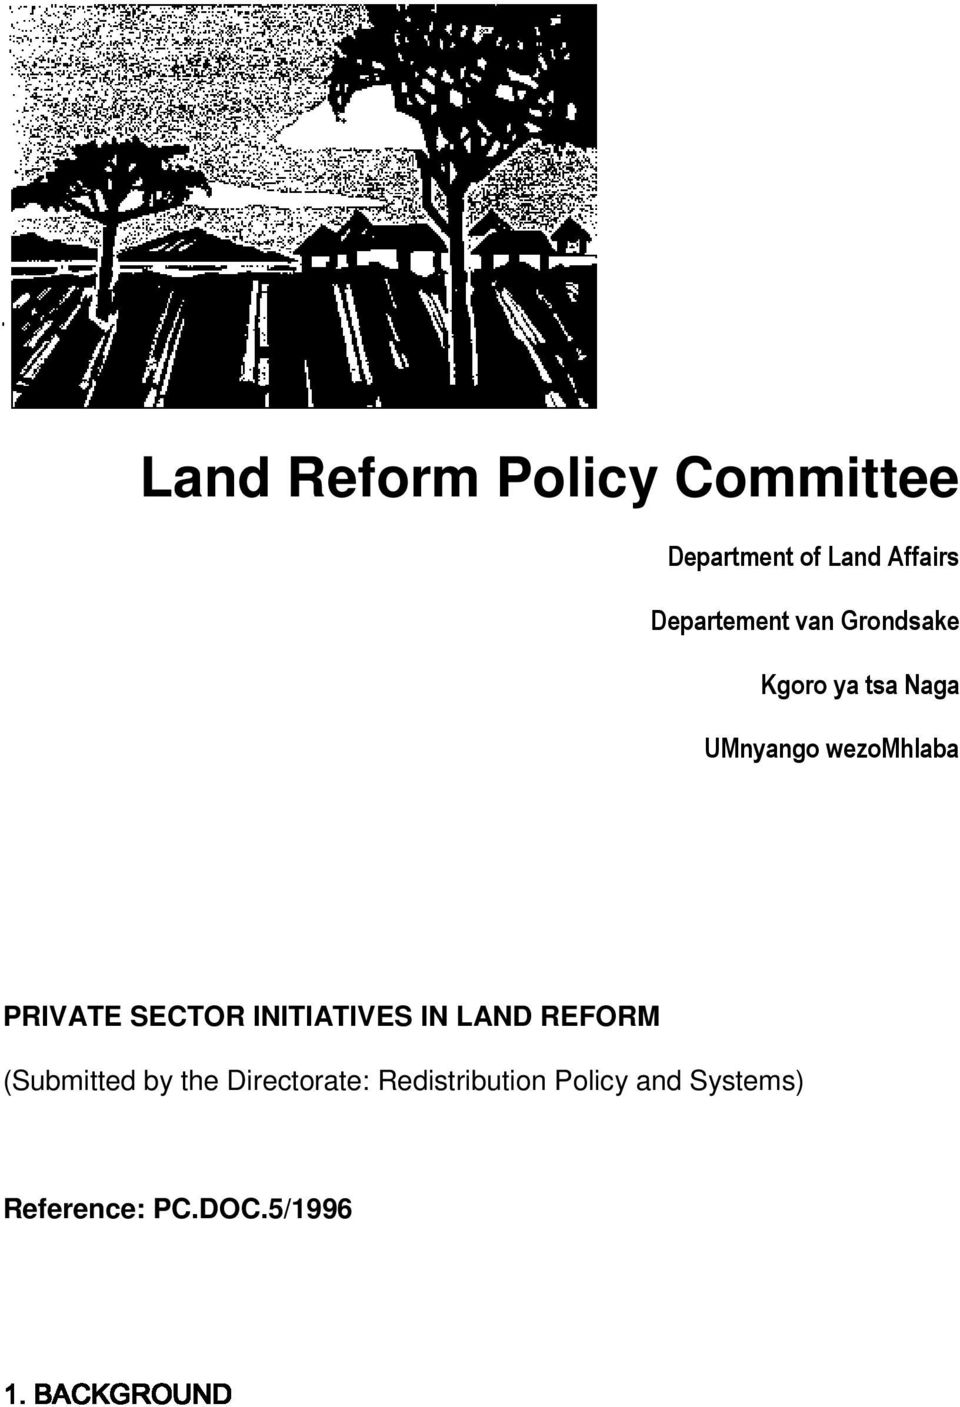 PRIVATE SECTOR INITIATIVES IN LAND REFORM (Submitted by the